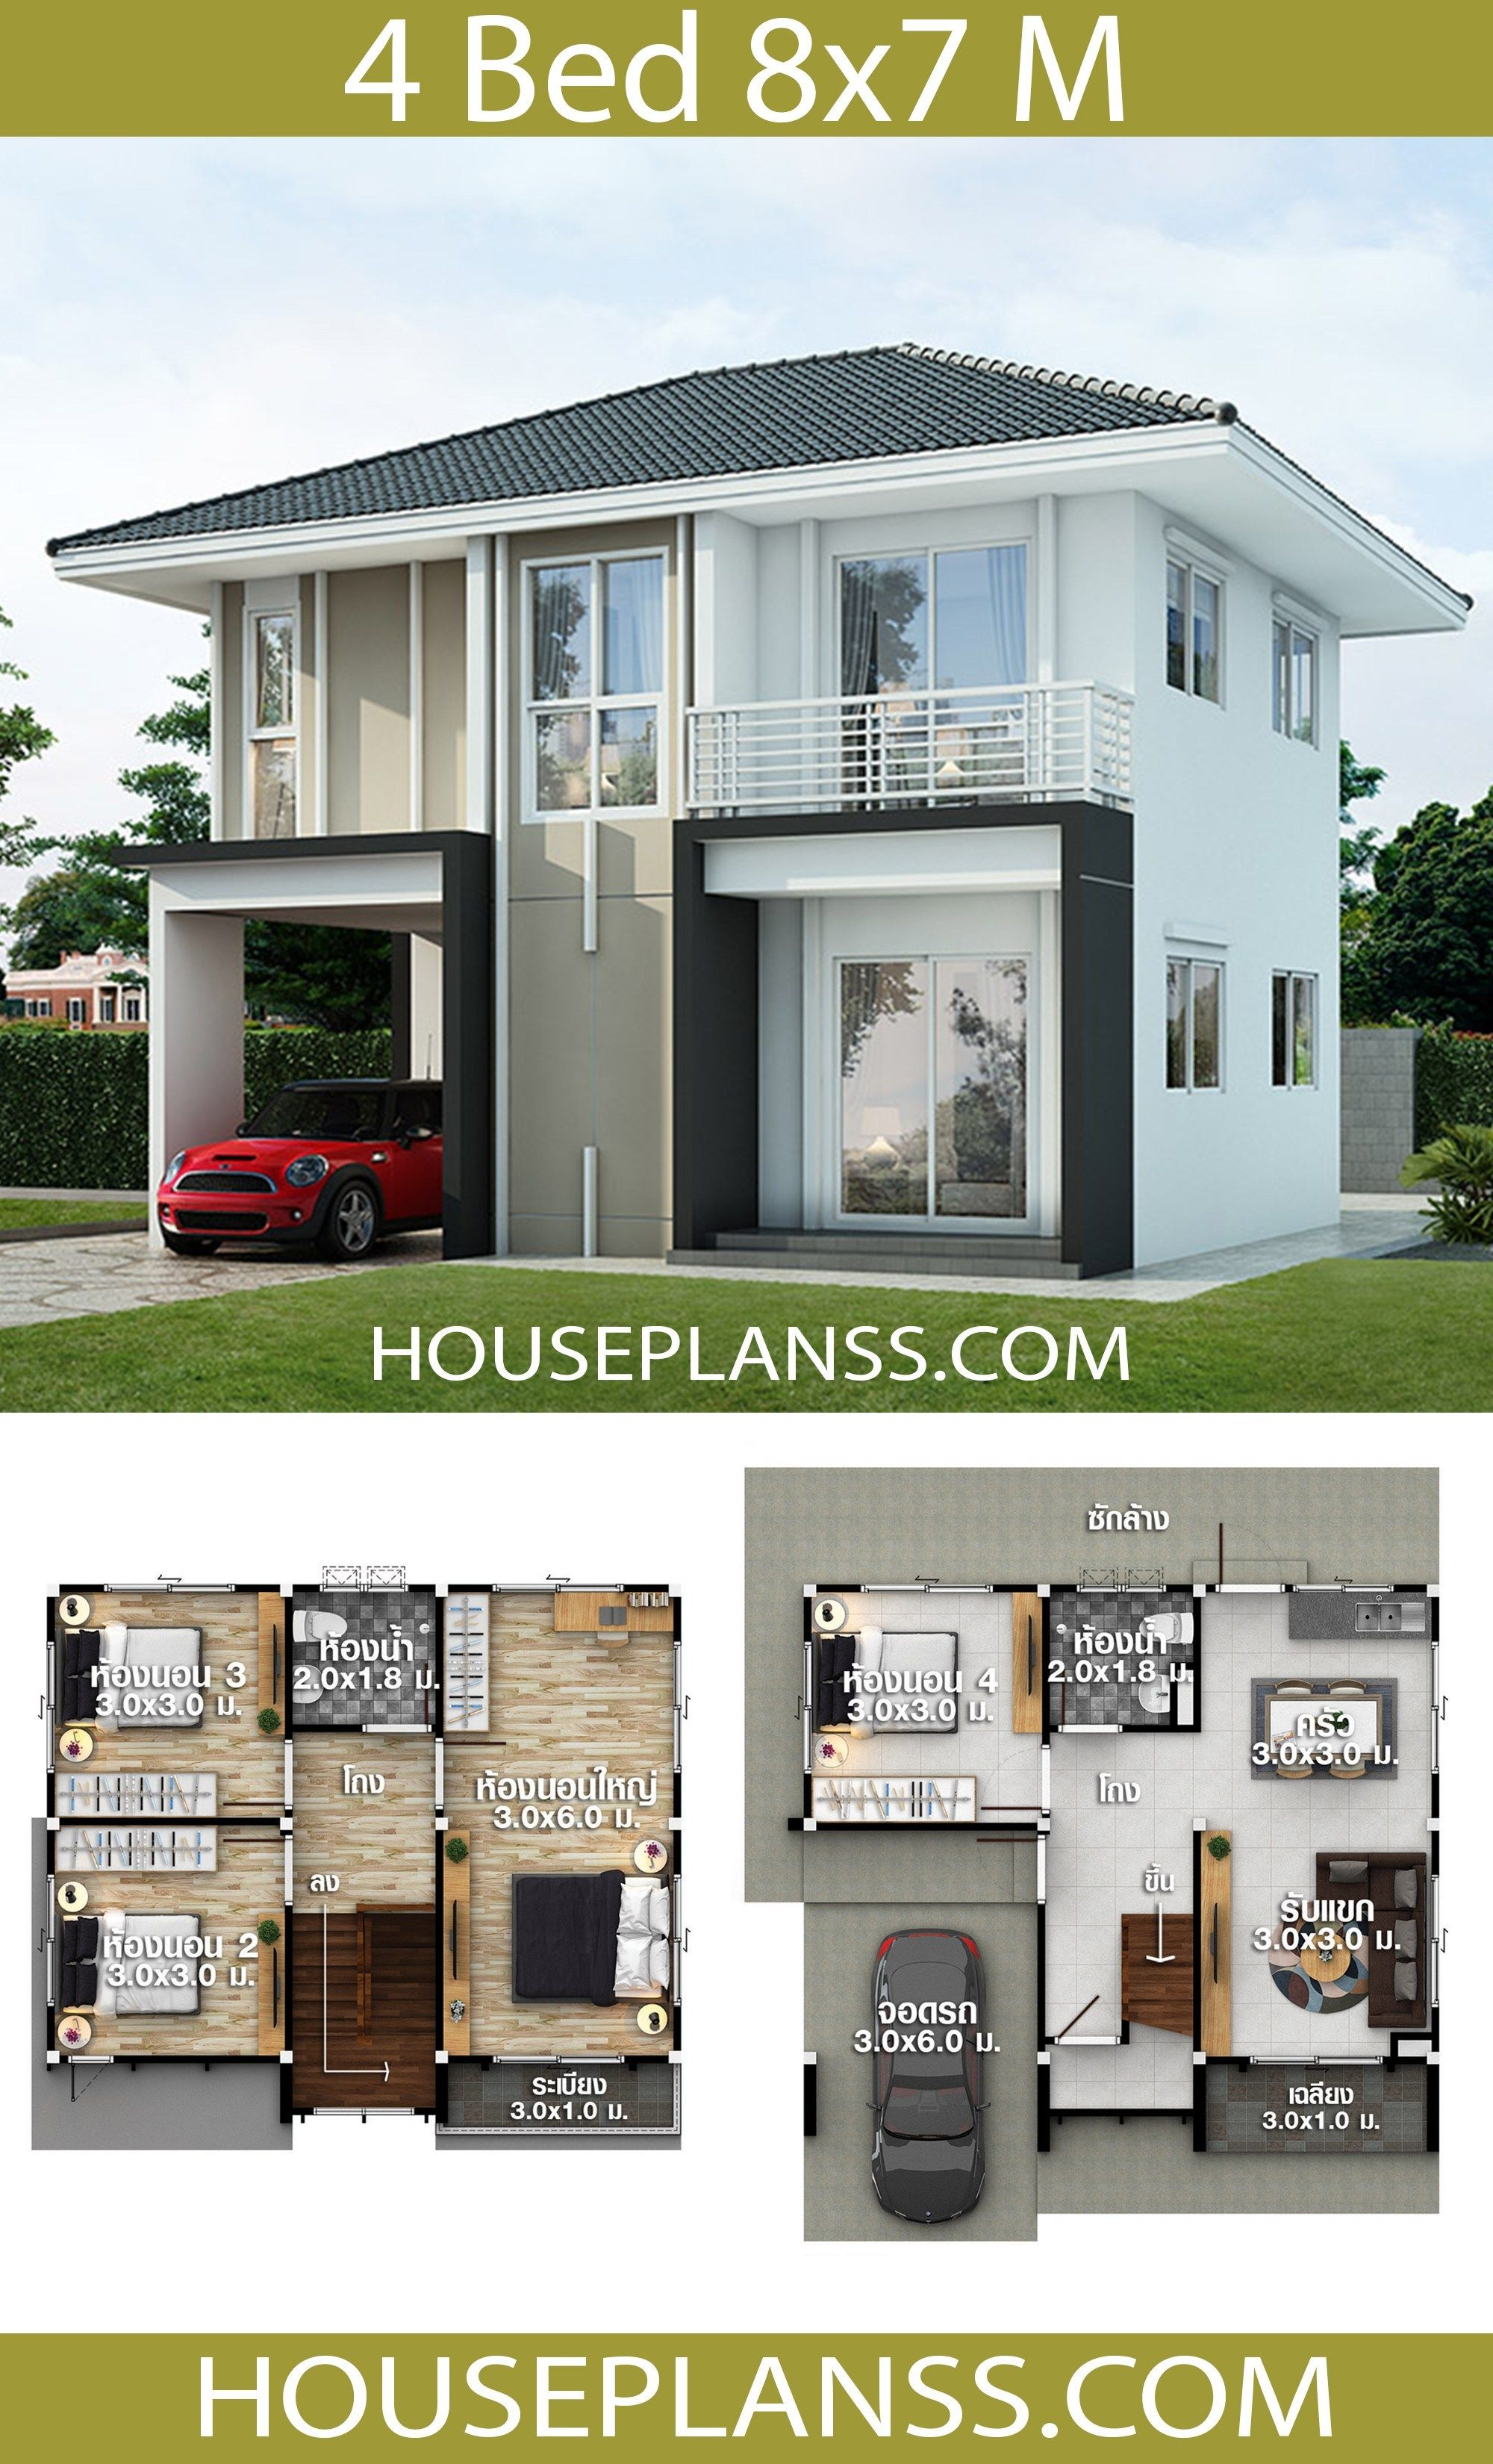 Pin By T Dinamico On Home Ideas In 2020 With Images Two Story House Design Model House Plan Small Modern House Plans